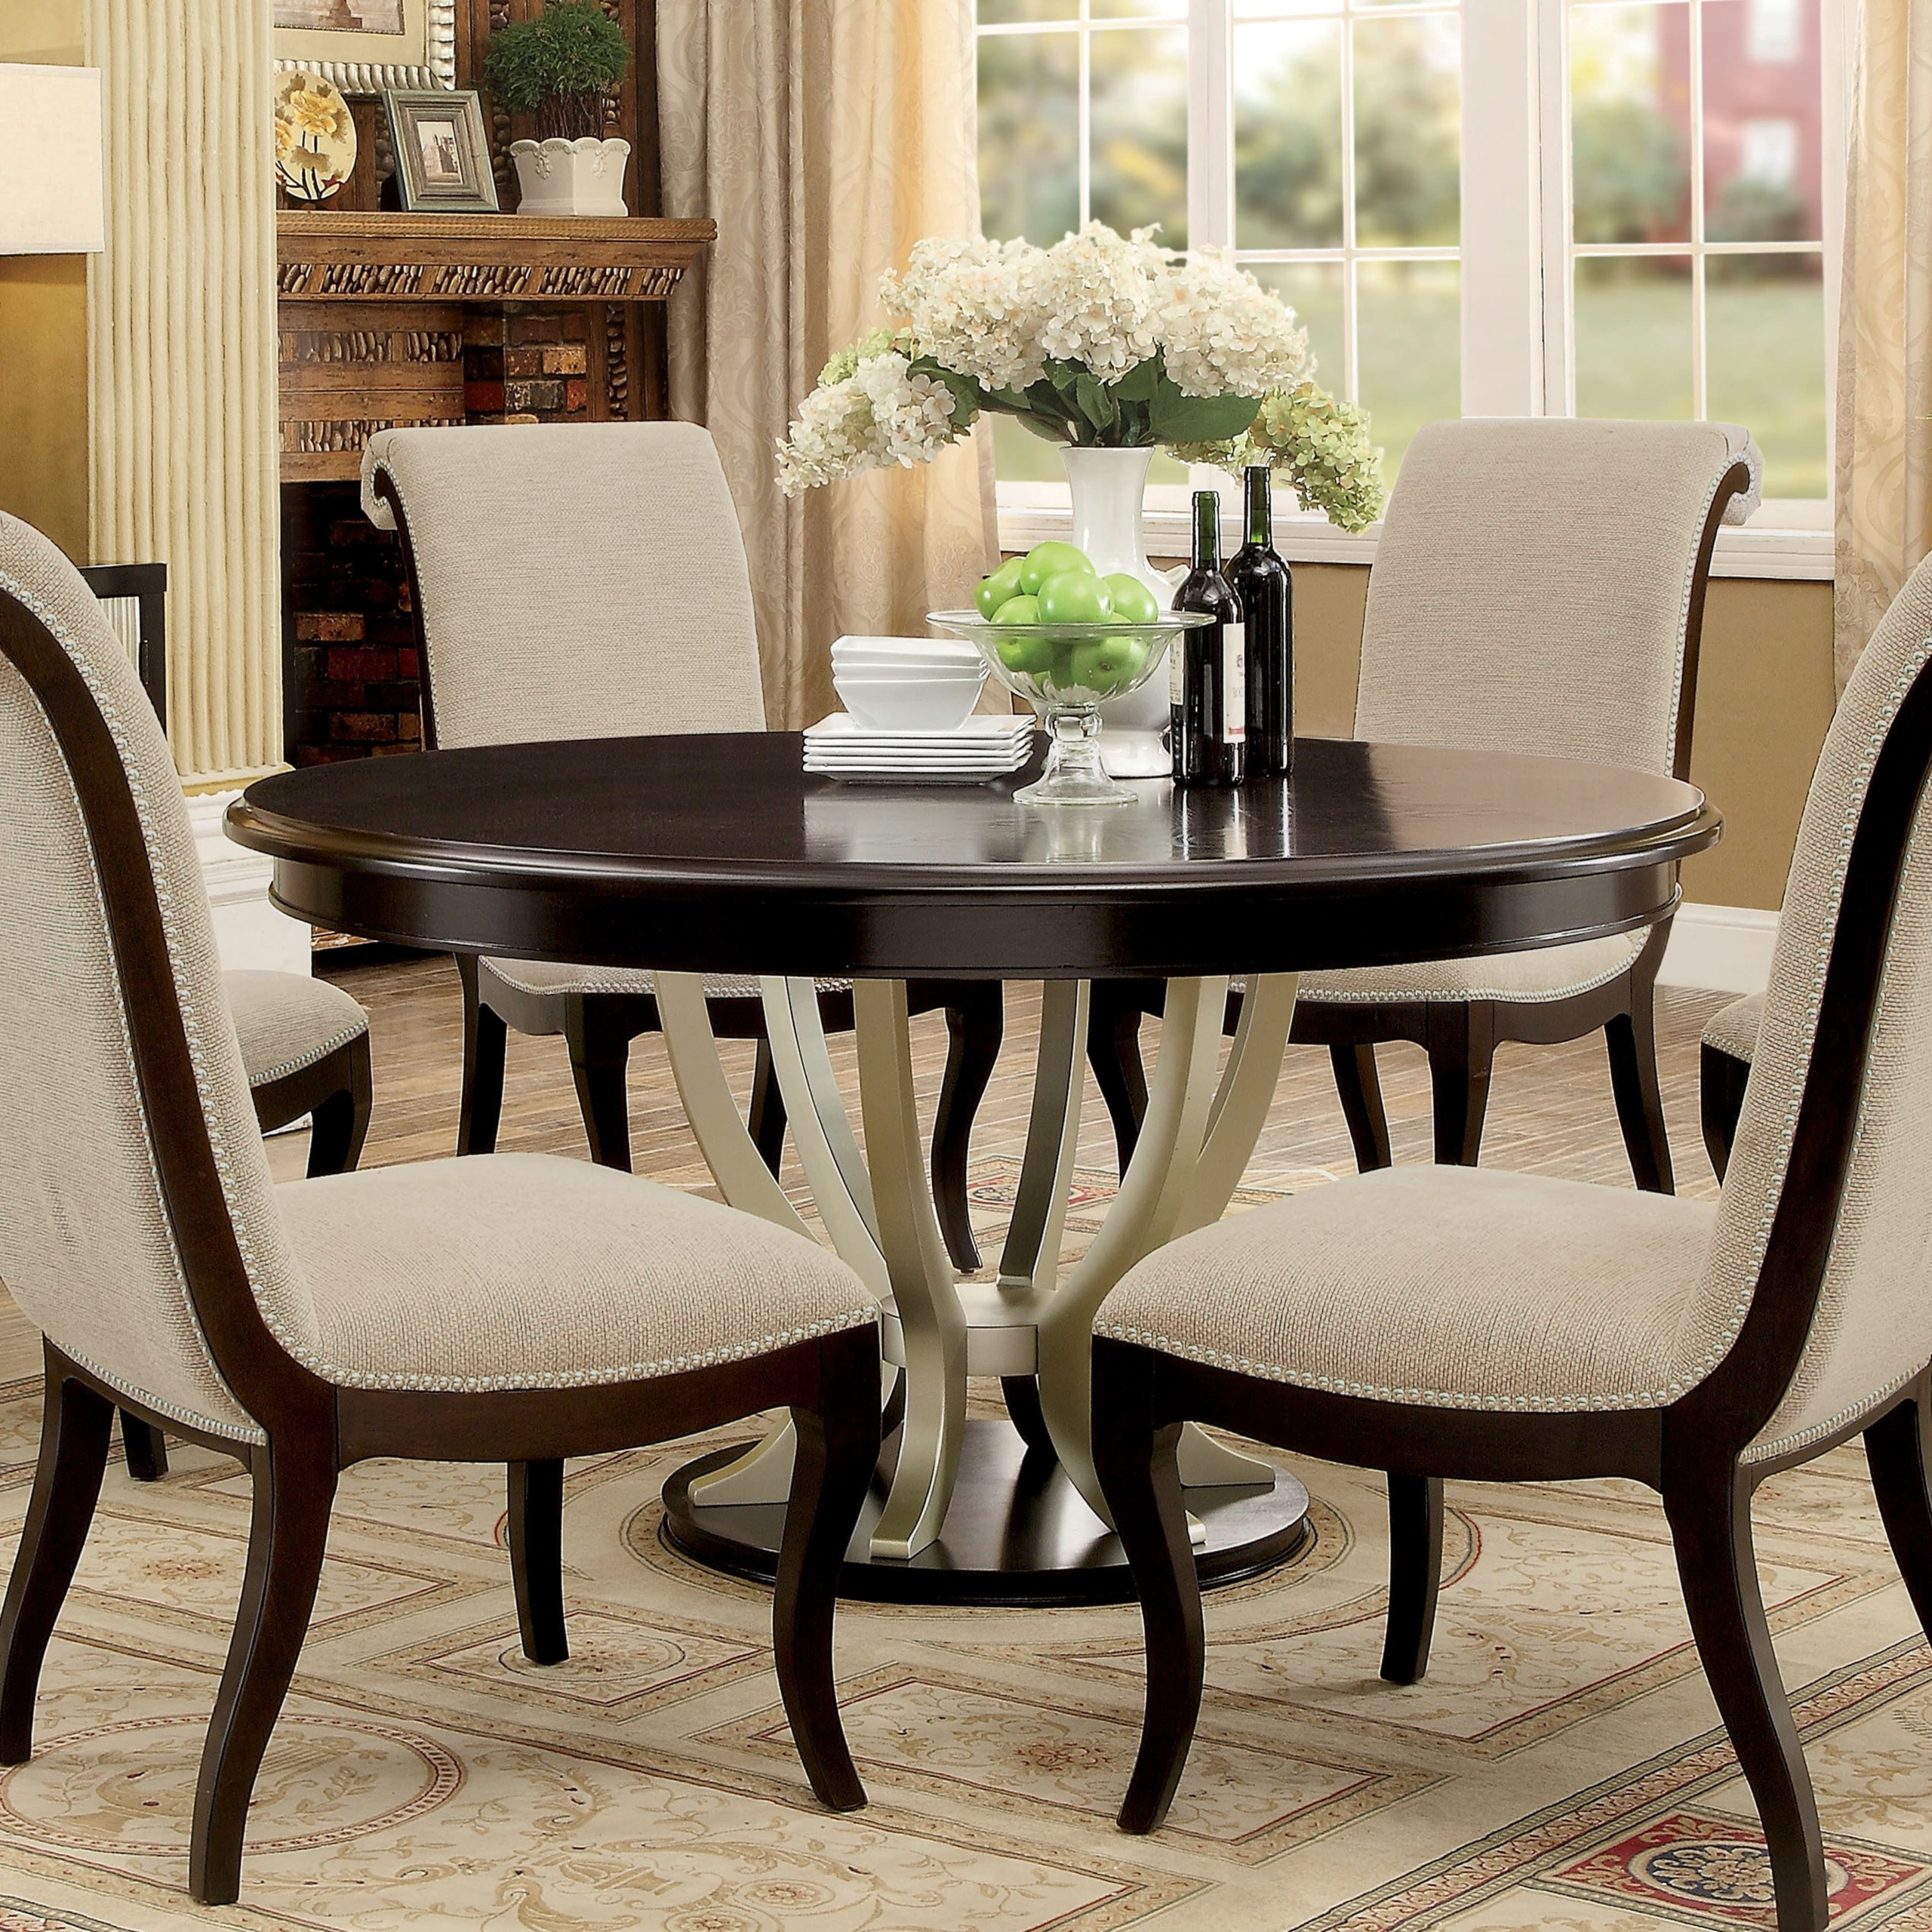 9 Amazing Round Dining Room Table For 6 Persons Under